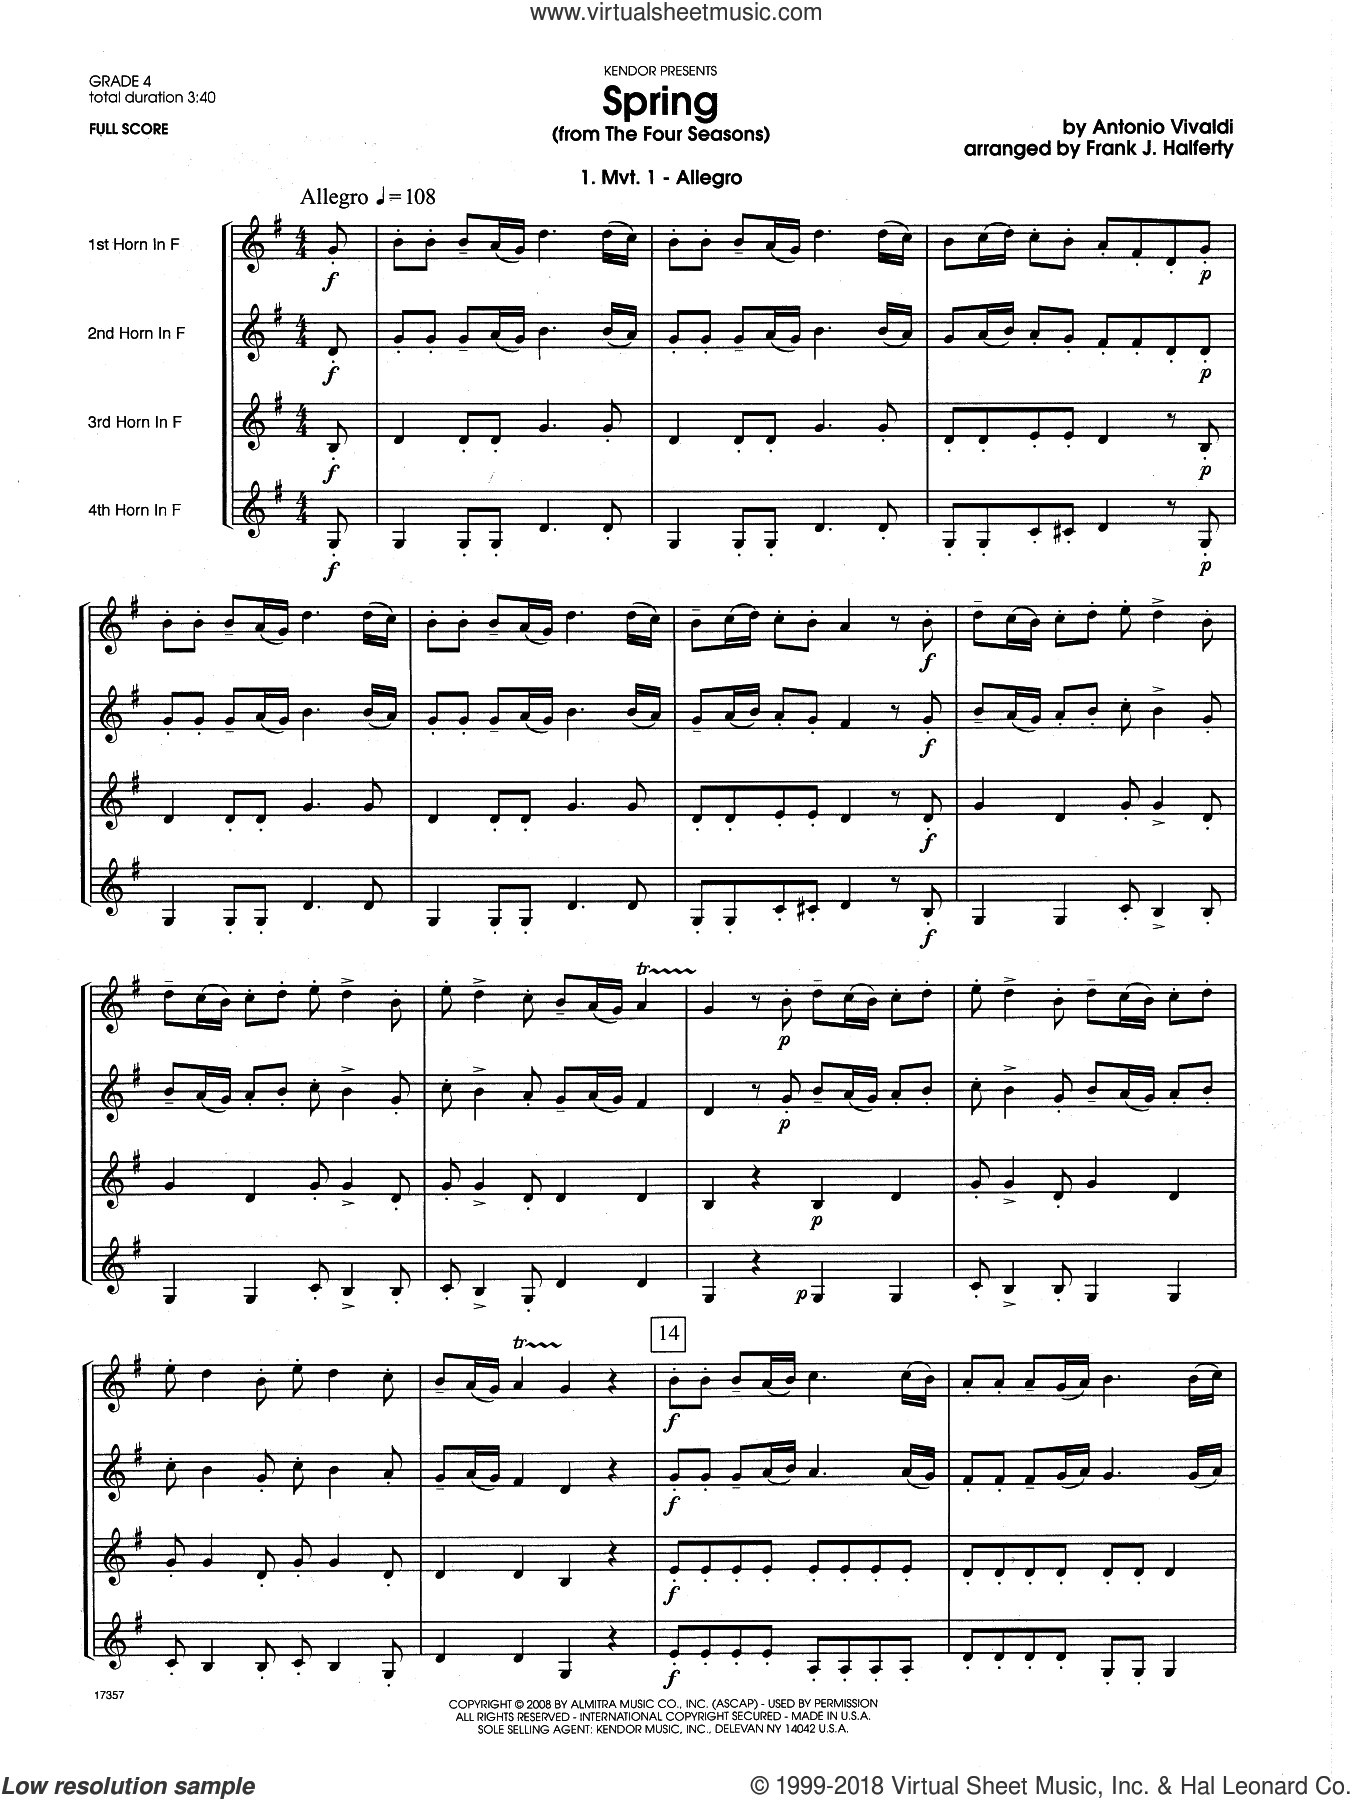 Spring (from The Four Seasons) (COMPLETE) sheet music for horn quartet by Antonio Vivaldi and Frank J. Halferty, classical score, intermediate skill level